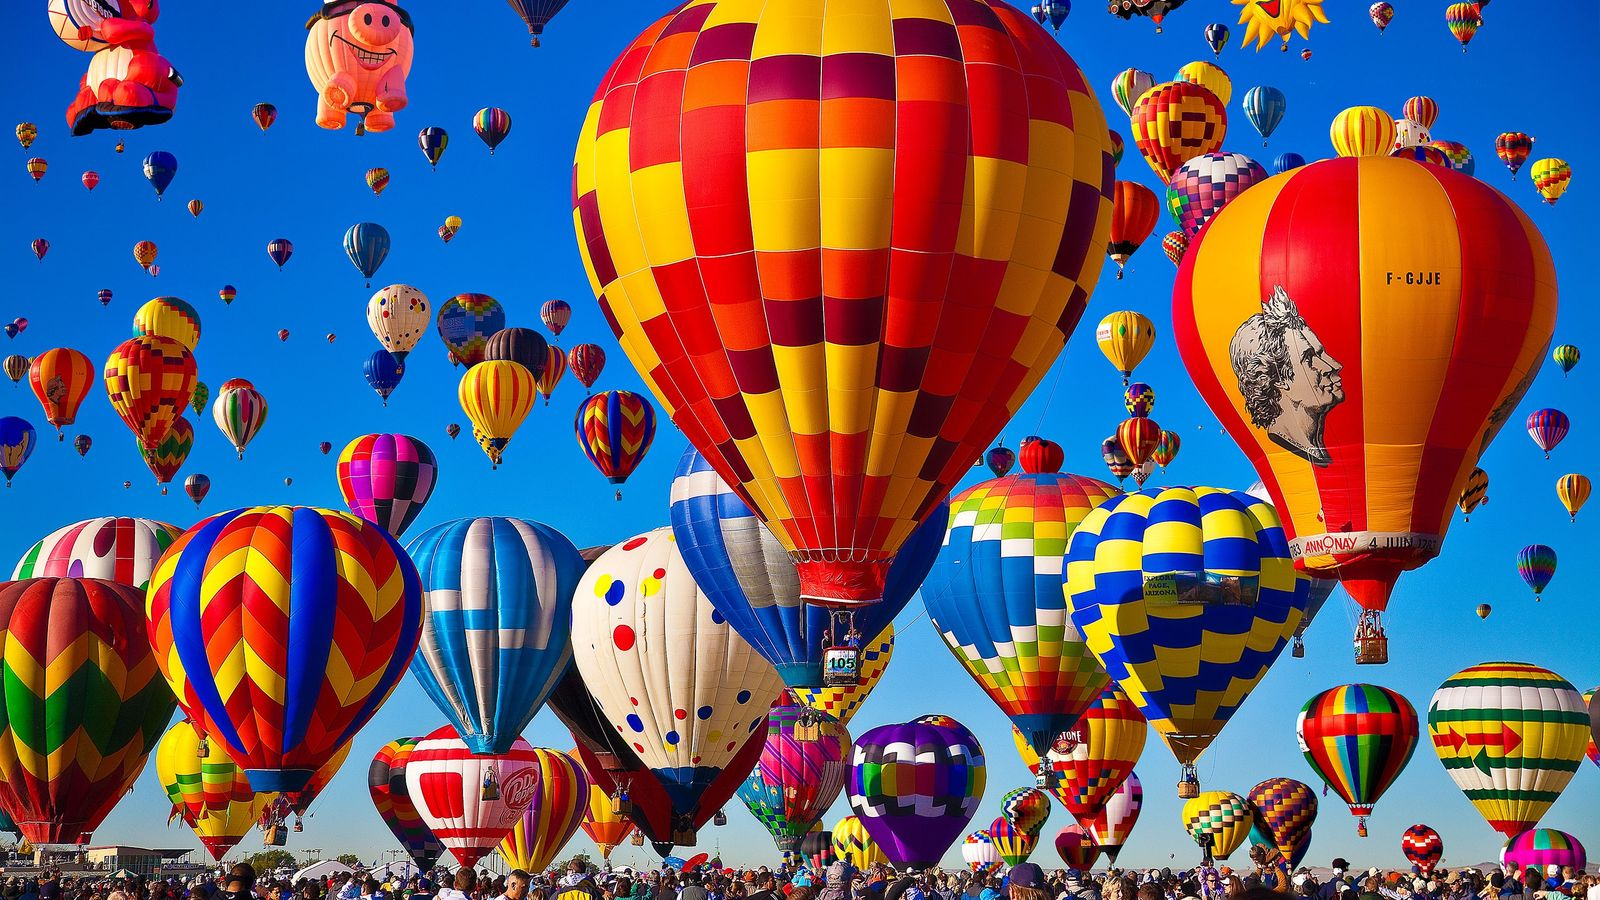 The Albuquerque International Balloon Fiesta is the world's largest gathering of hot-air balloons.